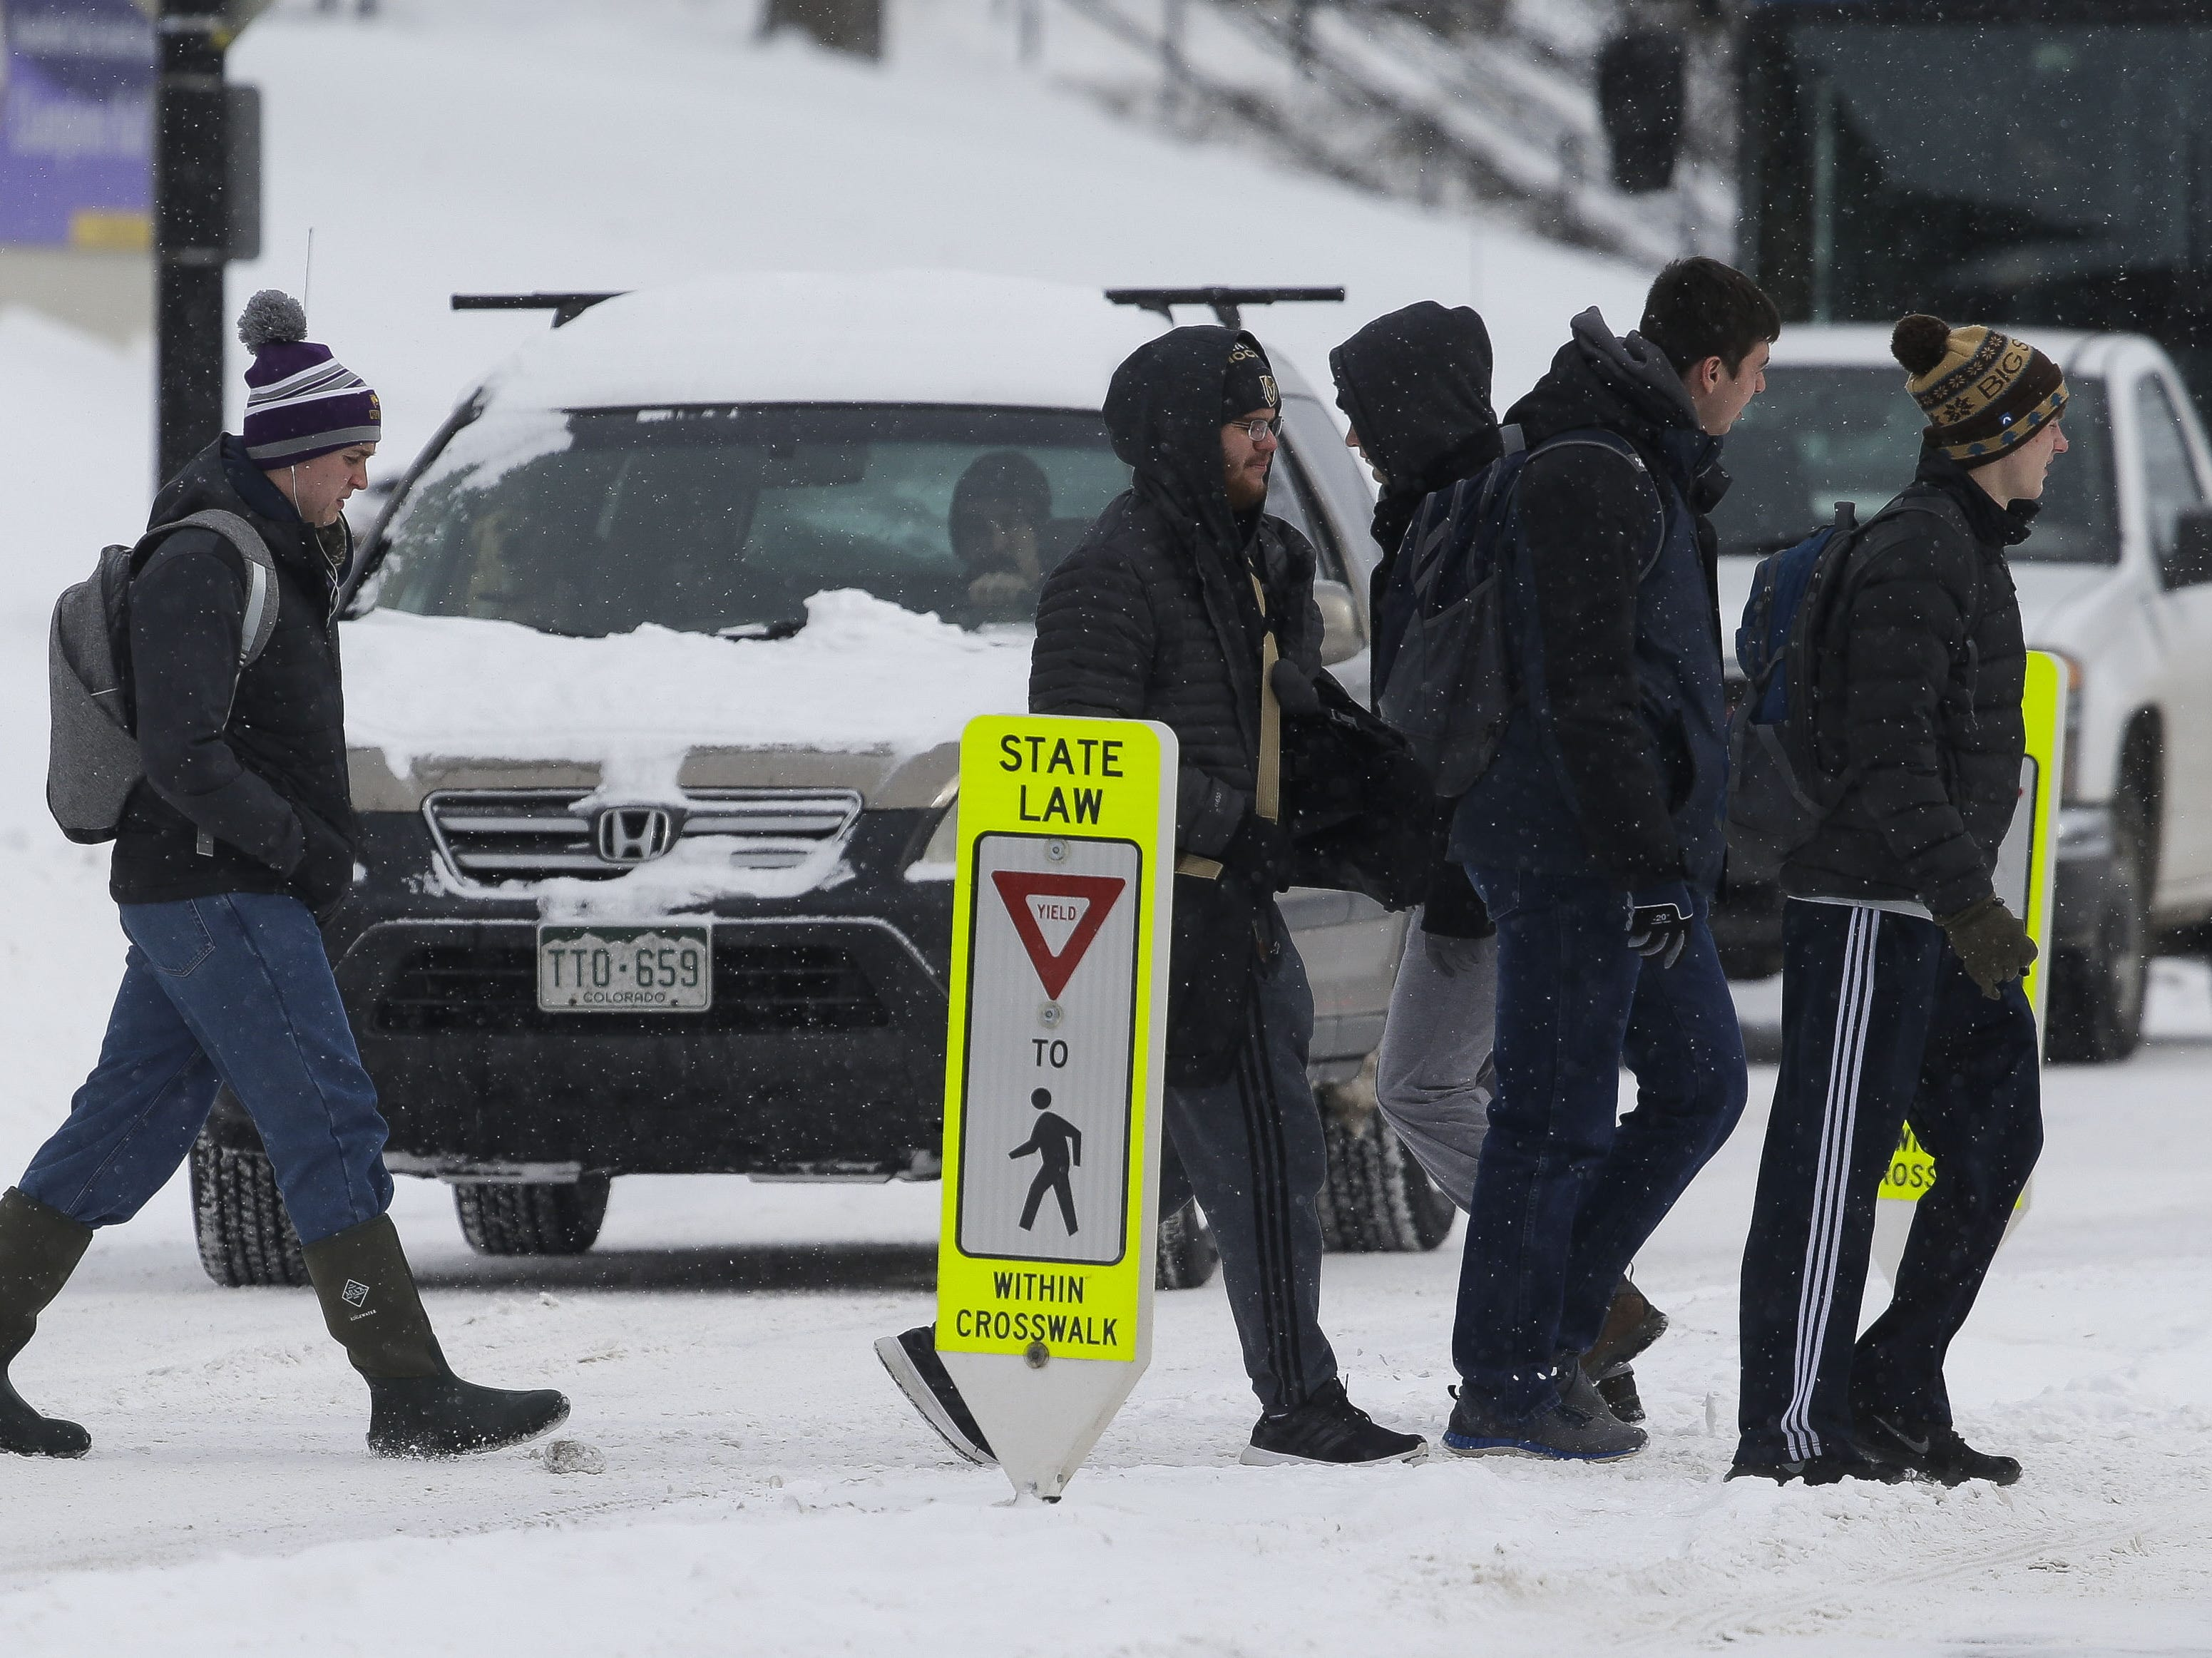 UWSP students cross the street on Monday, Jan. 28, 2019, in Stevens Point, Wis. A winter storm rolled through Wisconsin on Sunday and Monday, marking the first major snowfall of the season.